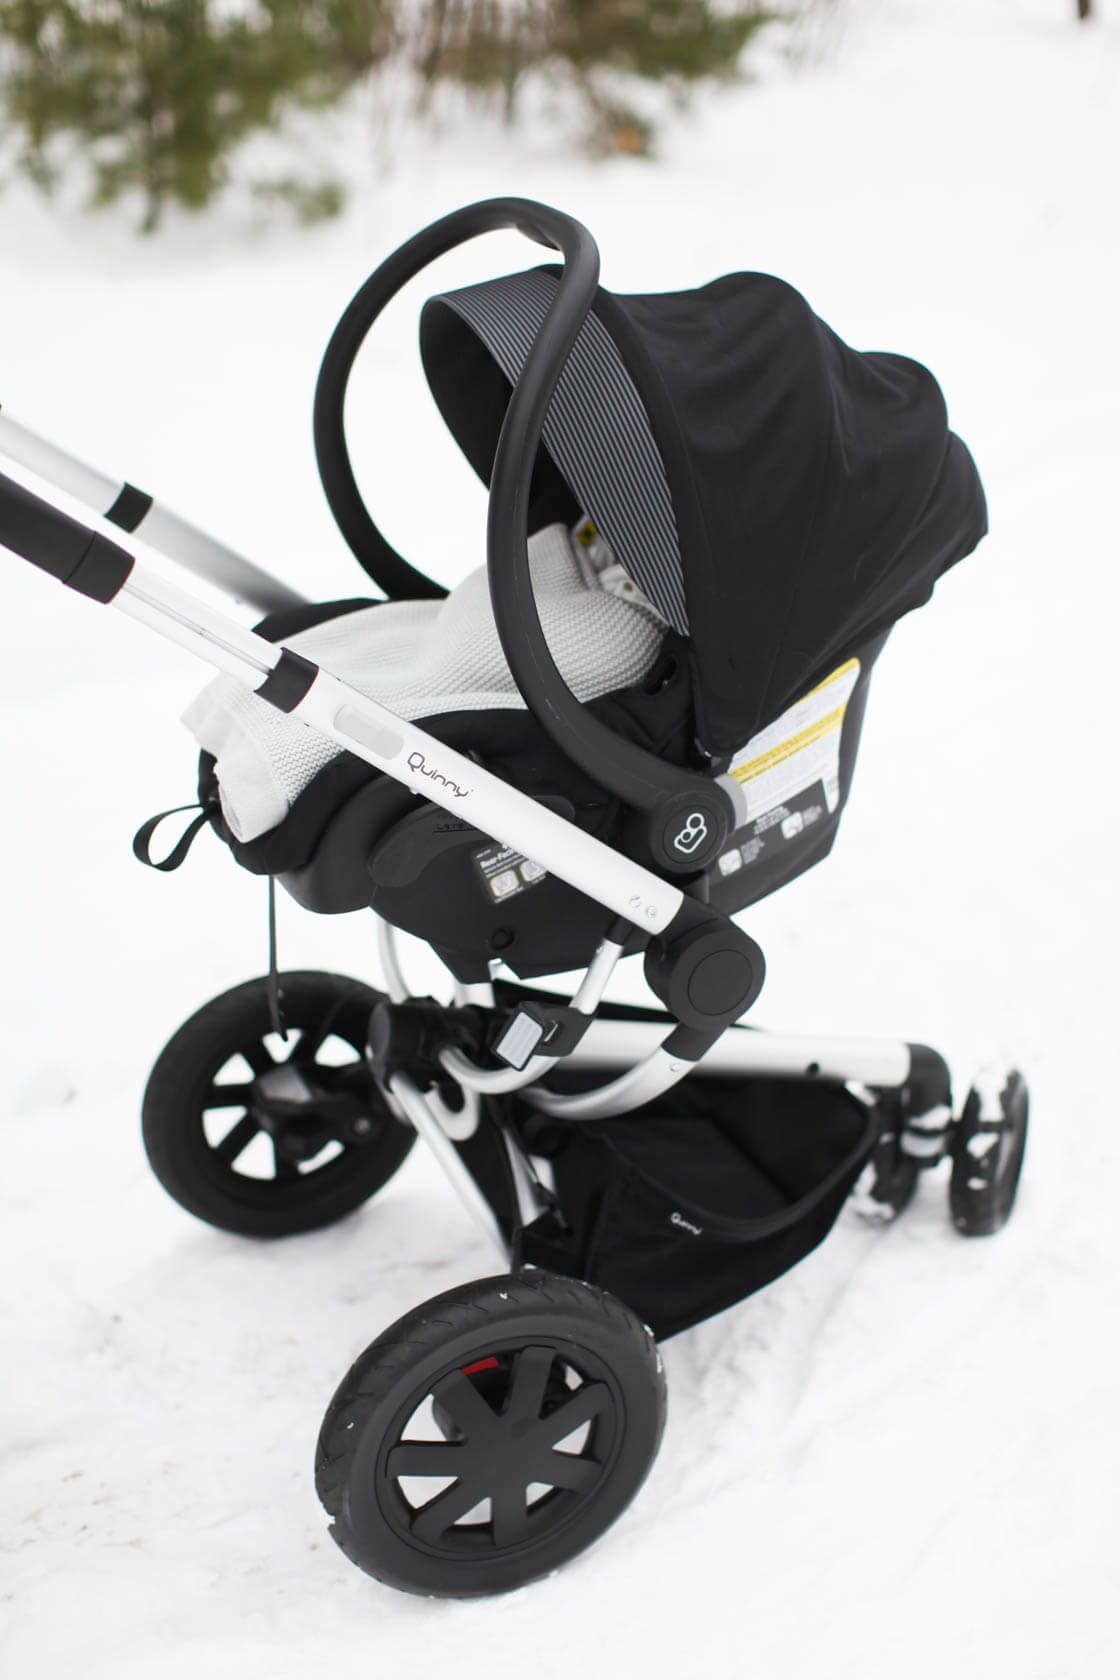 Our Car Seat and Stroller Combo - Samantha Elizabeth ...